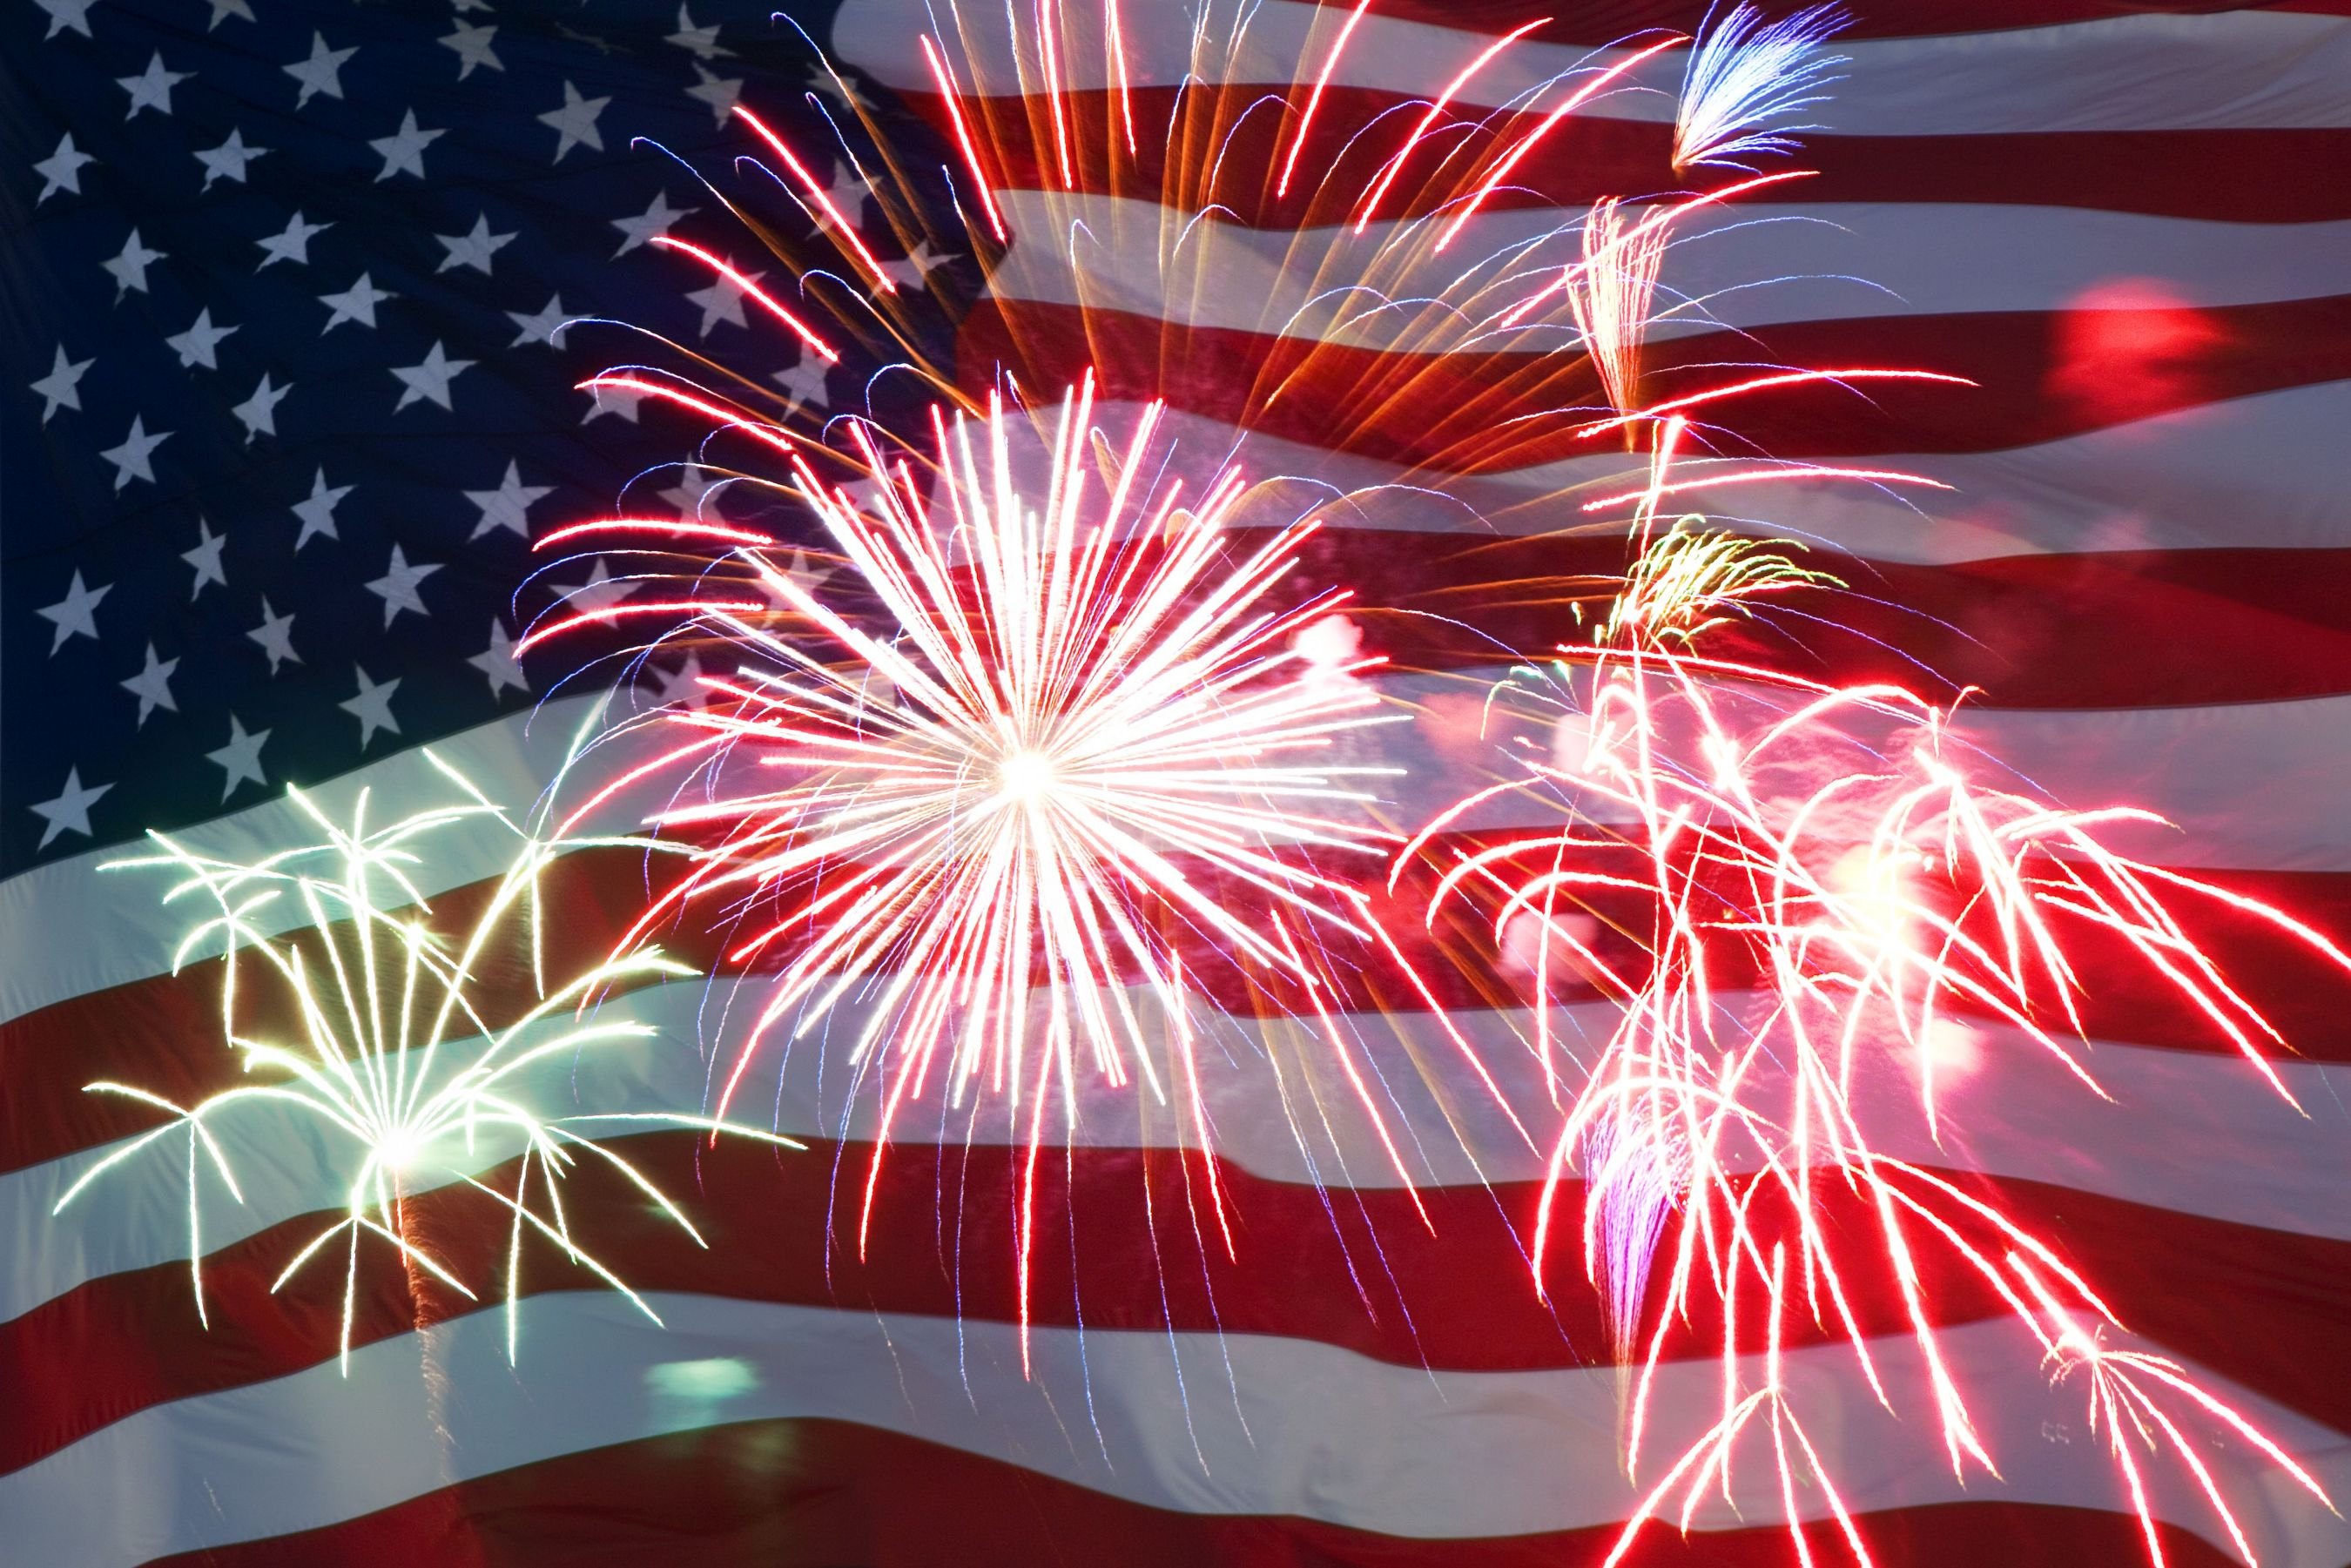 Increase Business At Your Bar/Restaurant During The July 4th Weekend